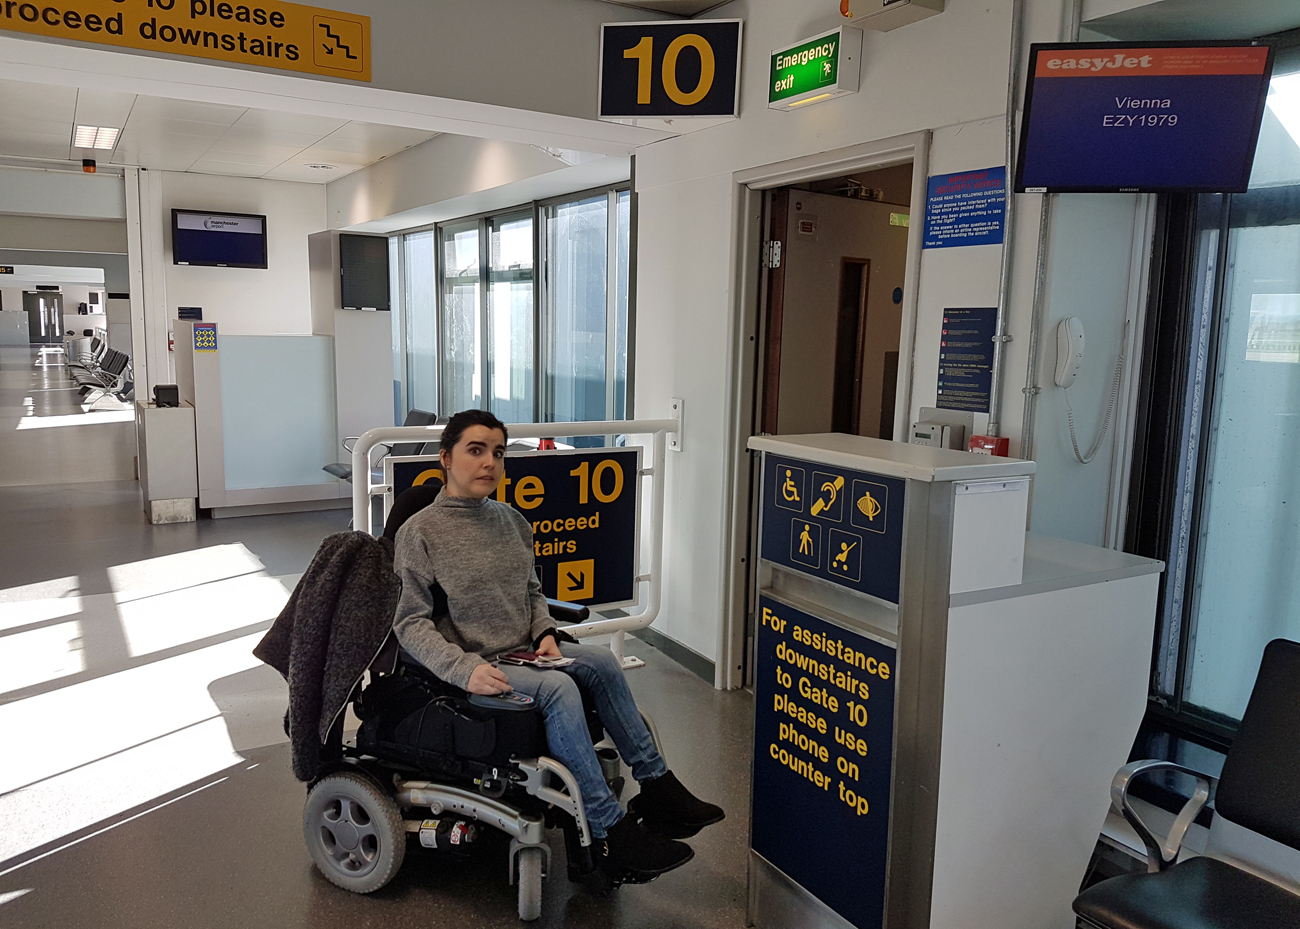 Vienna Photo Diary Manchester Airport wheelchair user at boarding gate